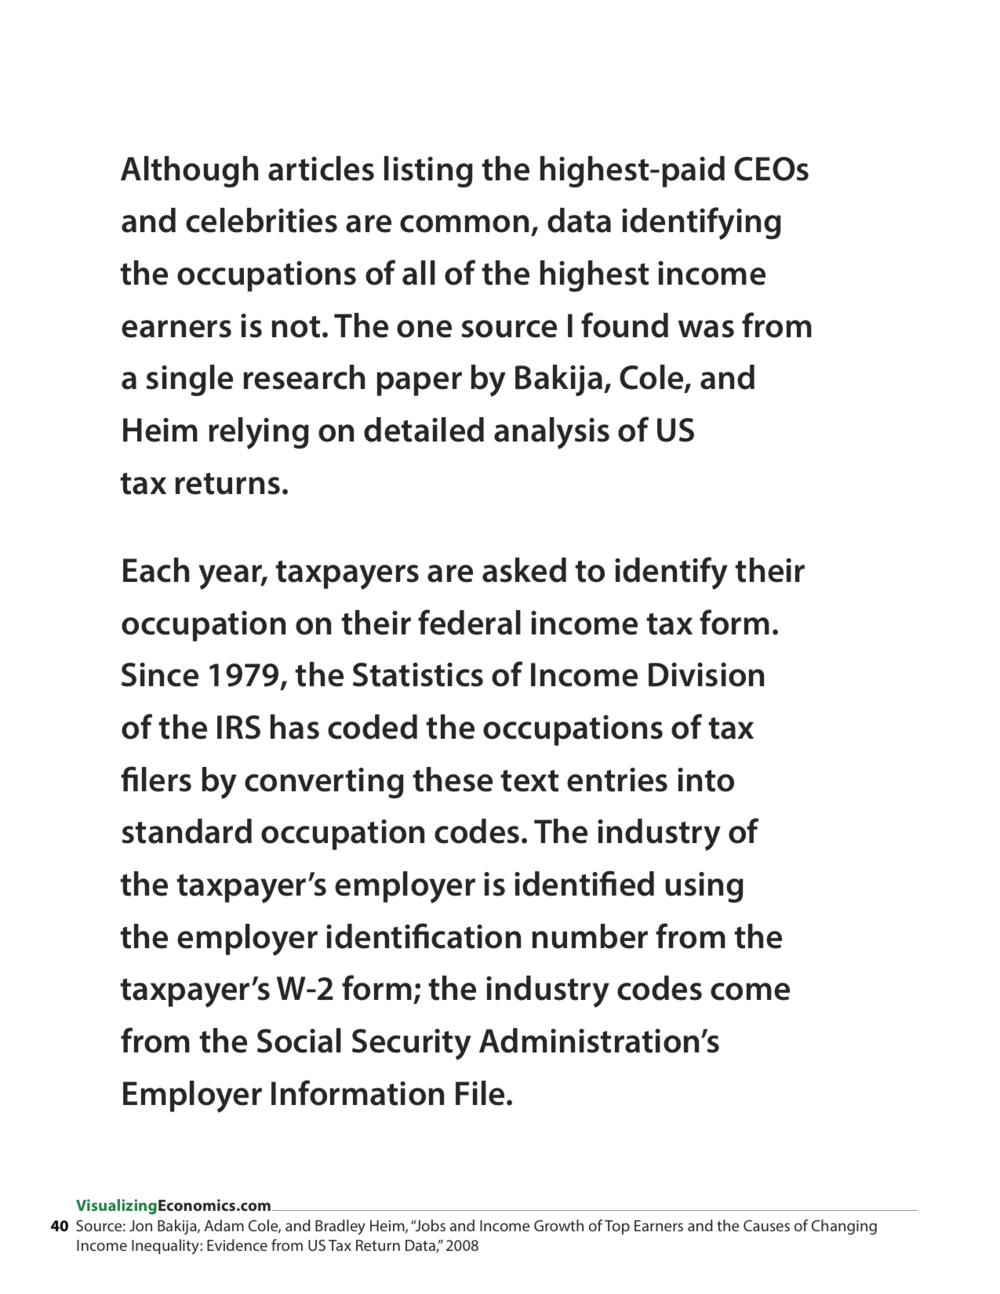 IncomeGuide_2013_Jan17_RGB_page 40_40.png